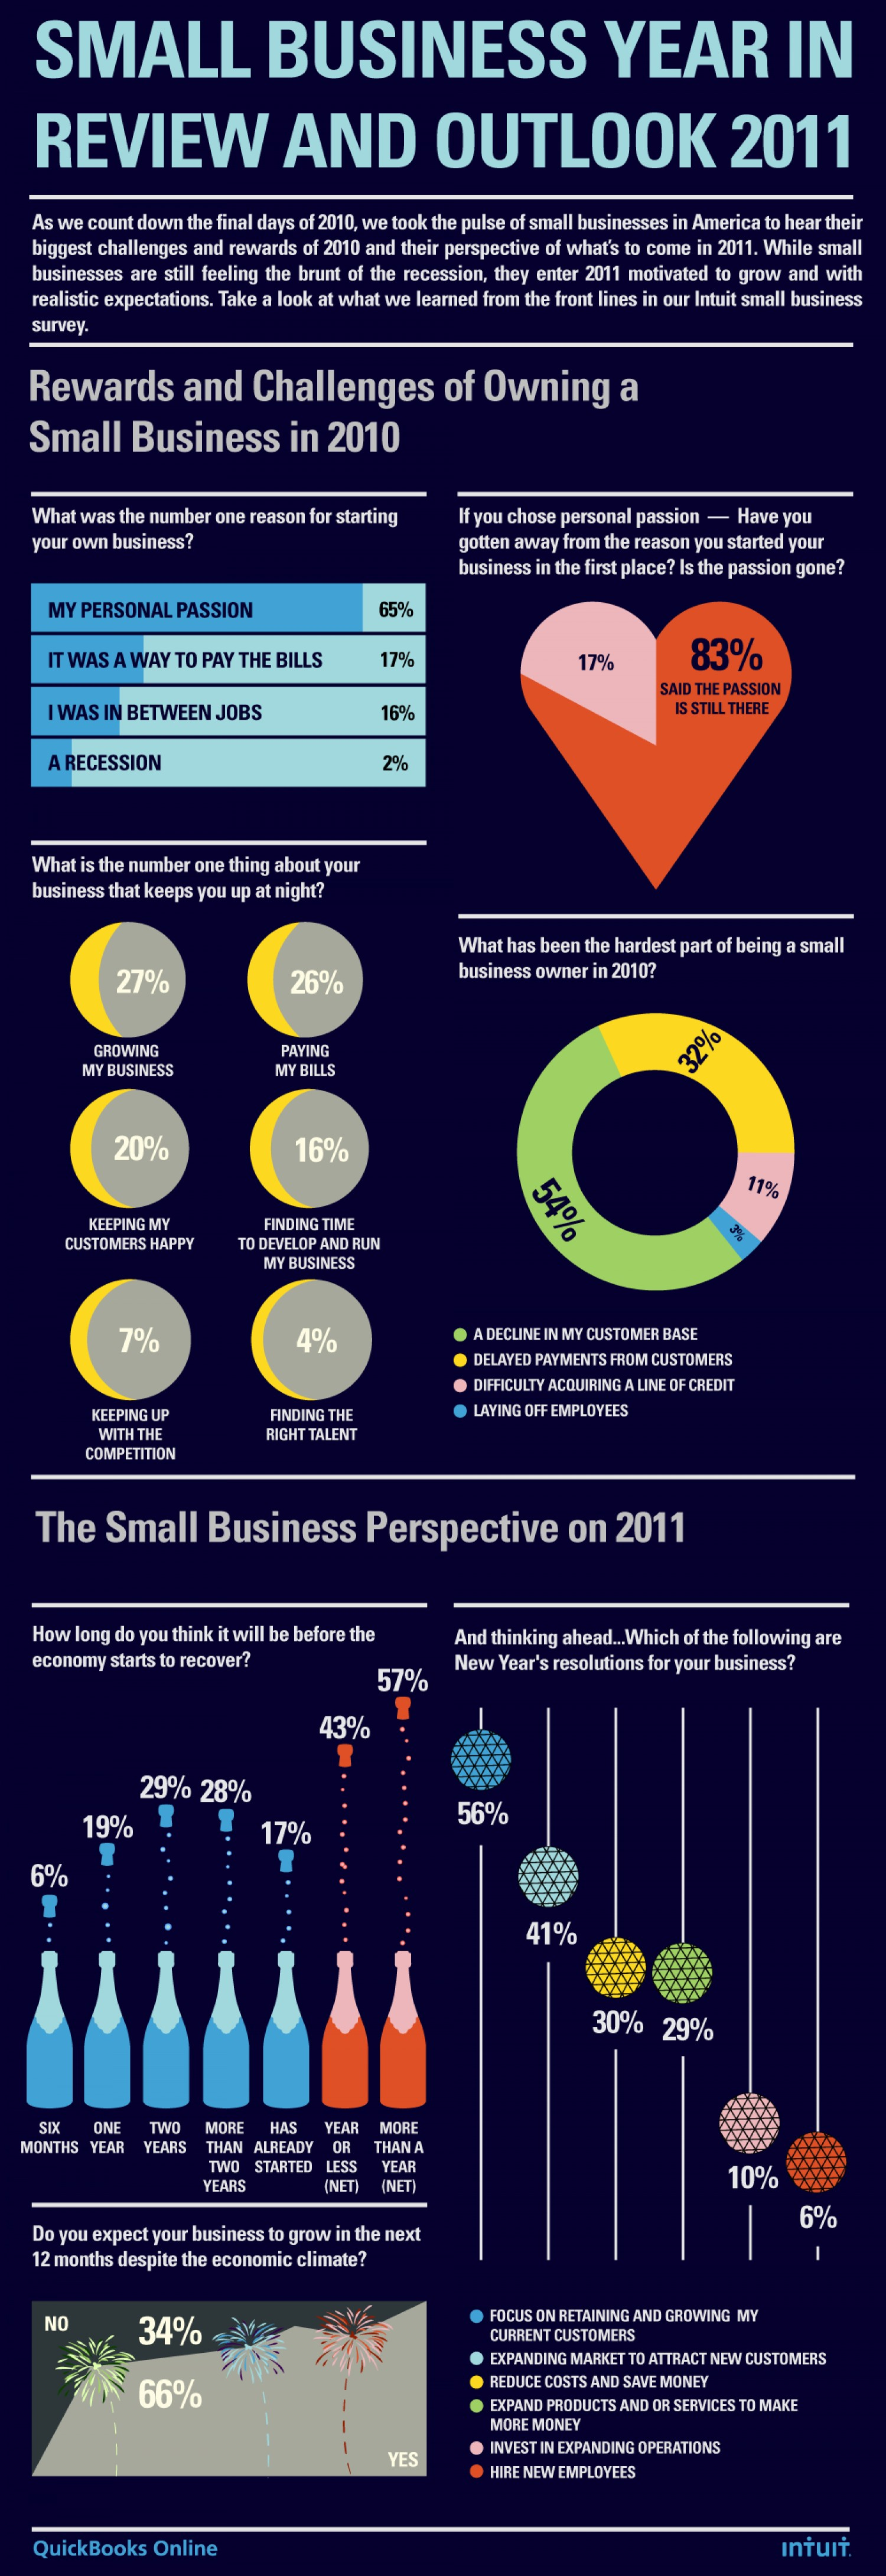 Small Business year Review and outlook 2011